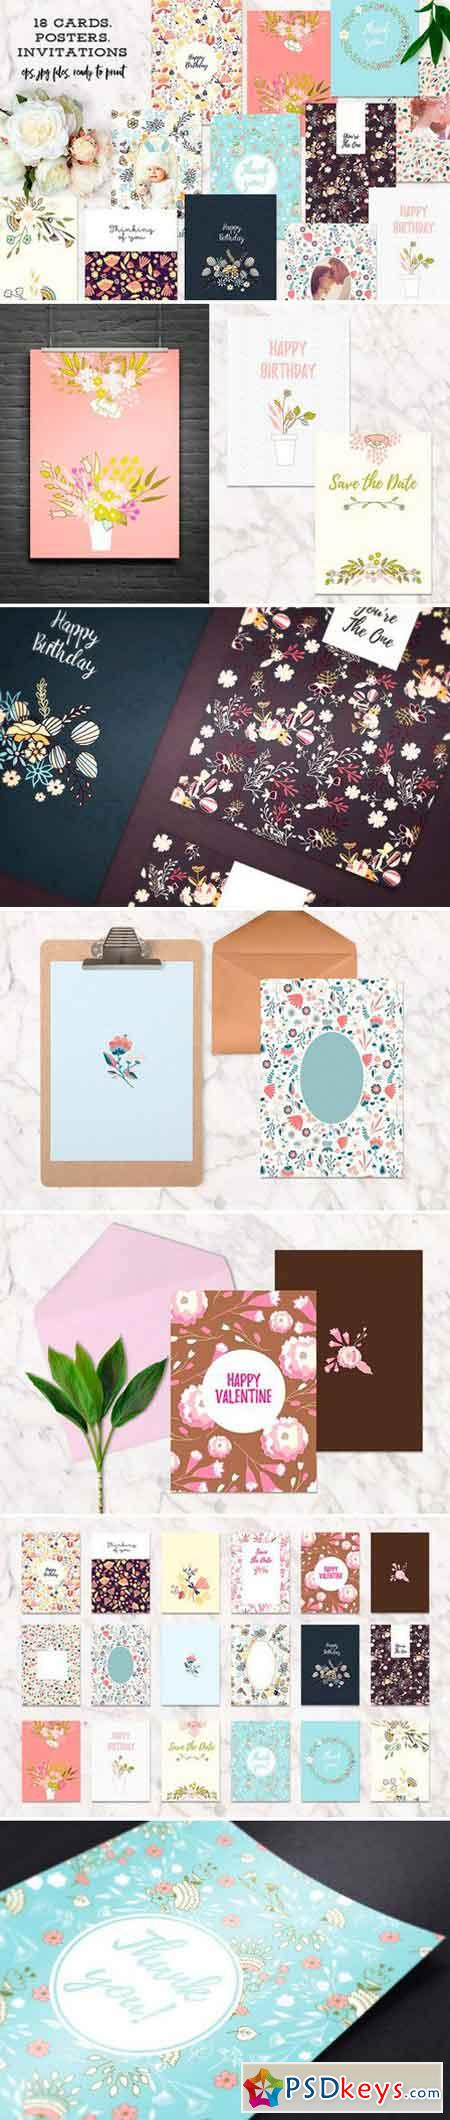 18 Cards, Invitations or Posters 902899